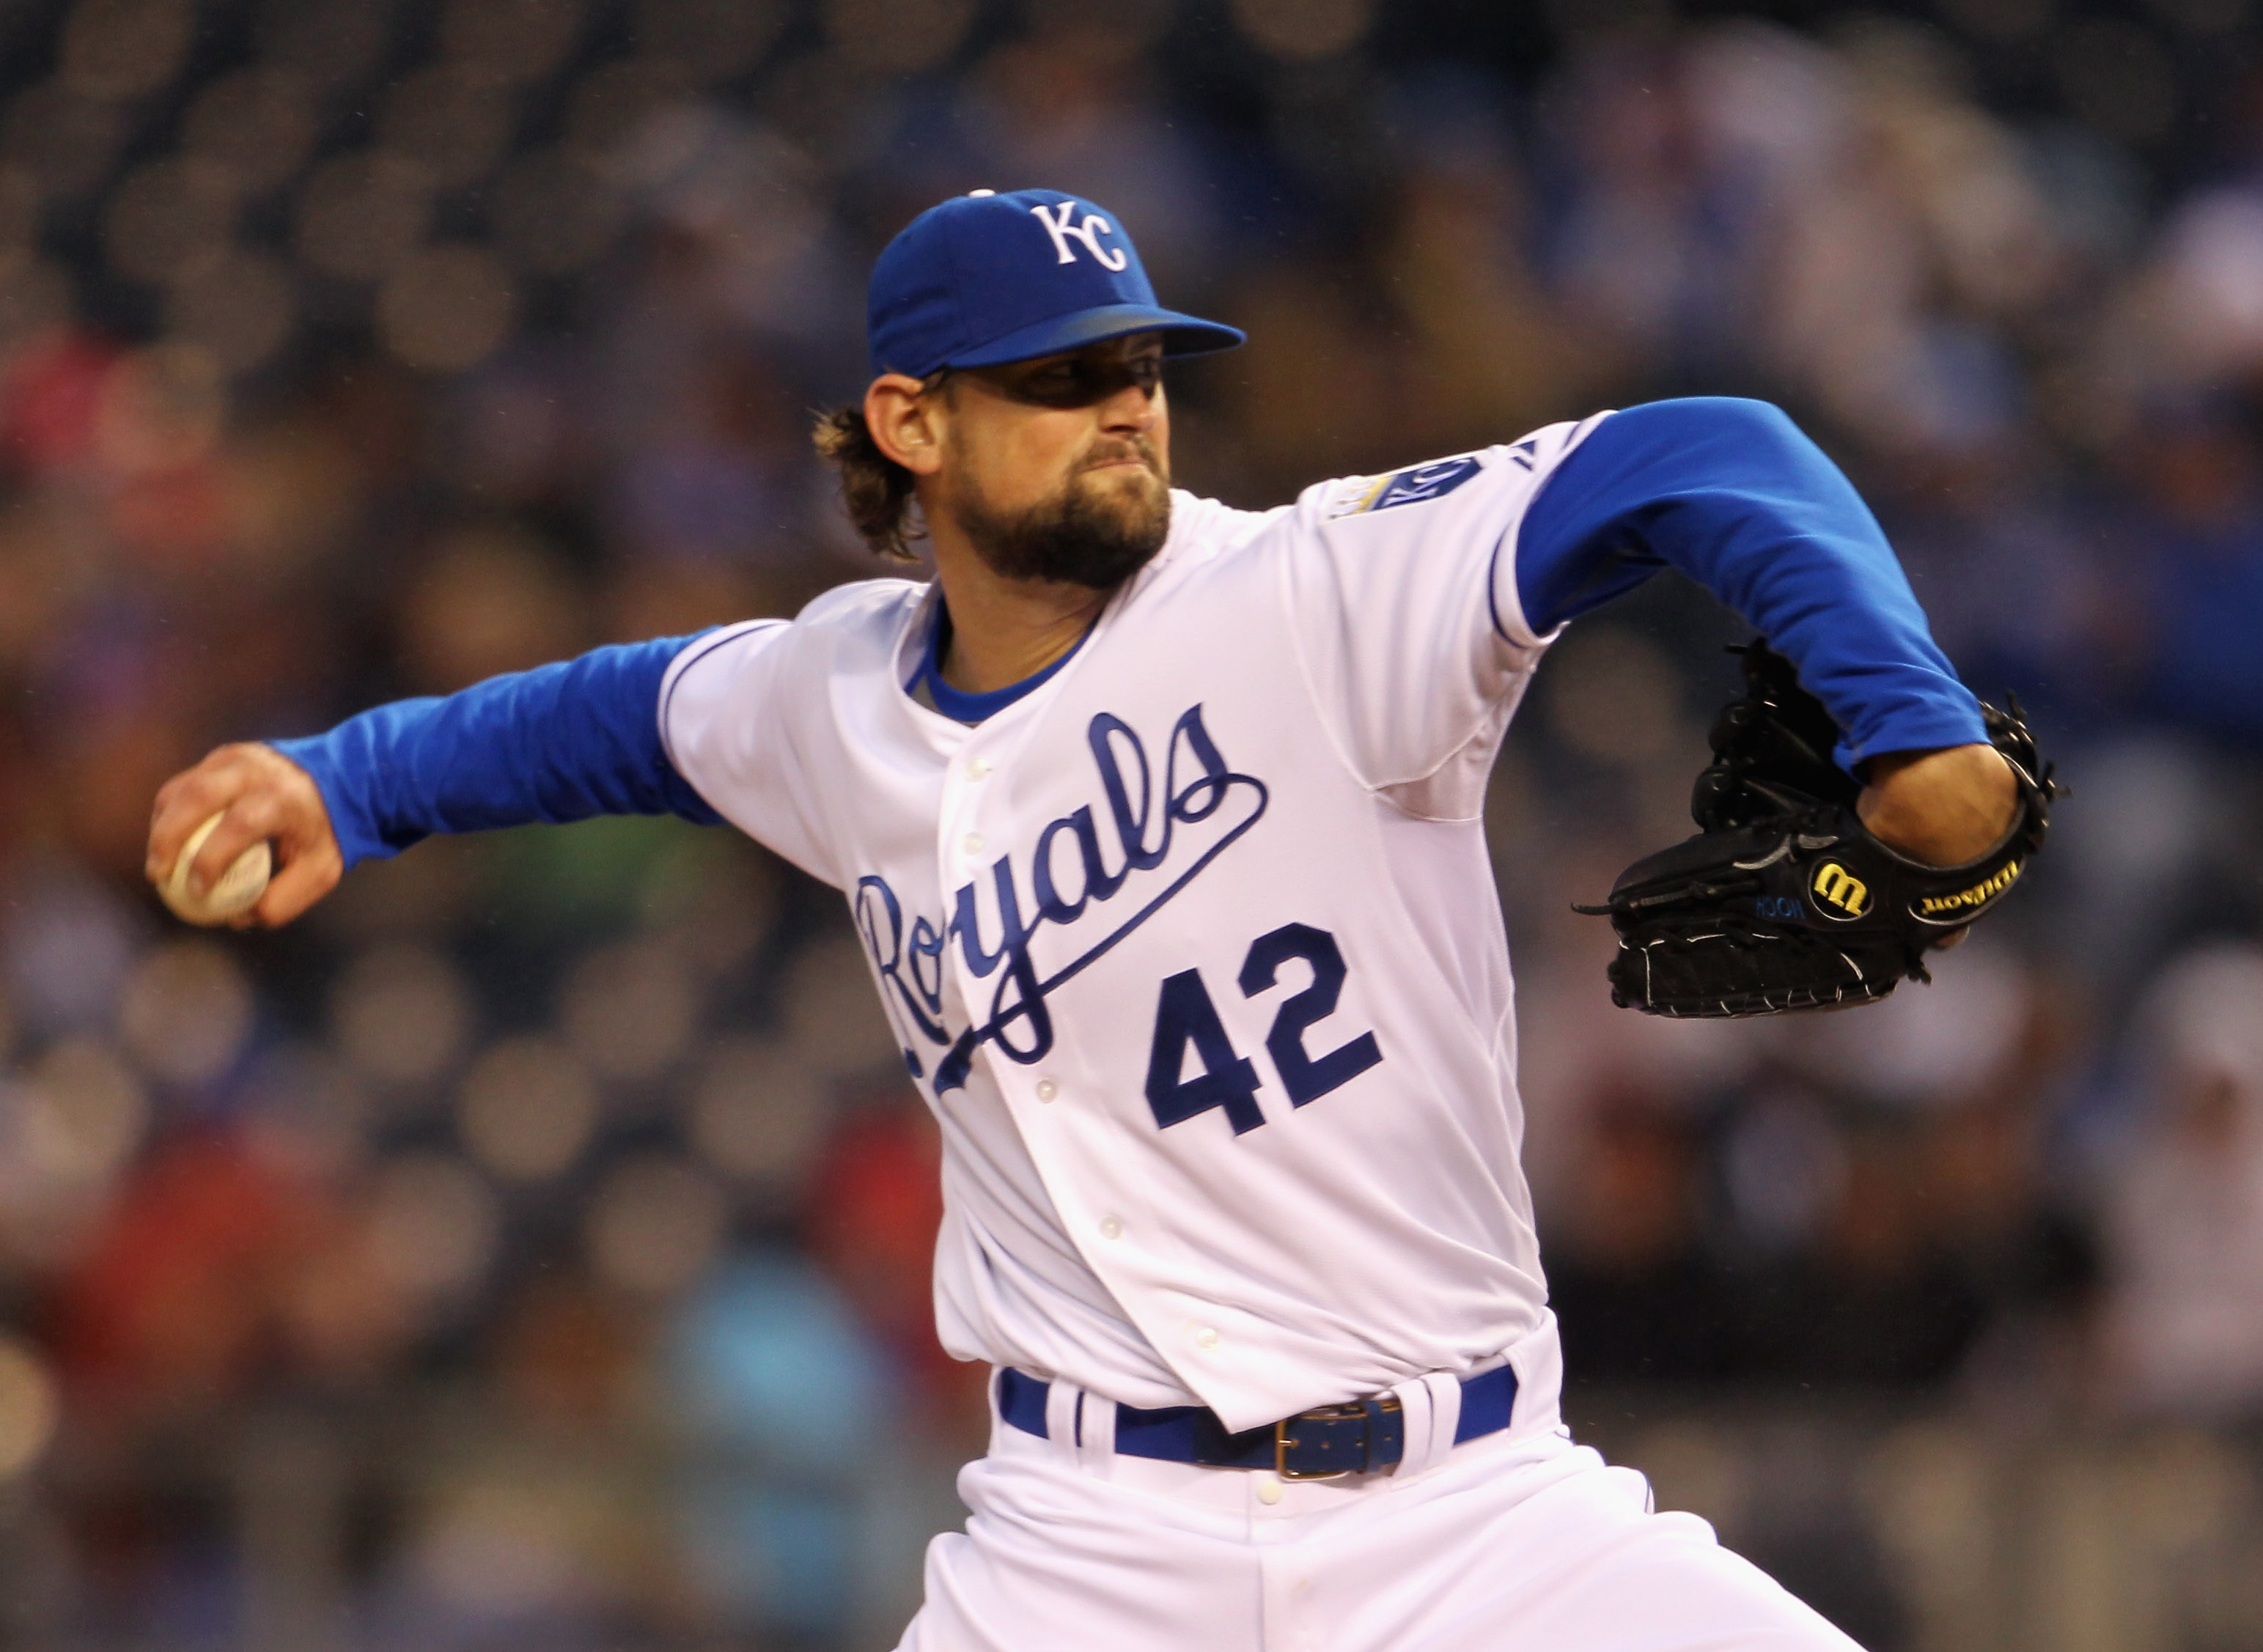 KANSAS CITY, MO - APRIL 15:  Starting pitcher Luke Hochevar #42 of the Kansas City Royals in action during the game against the Seattle Mariners at Kauffman Stadium on April 15, 2011 in Kansas City, Missouri.  (Photo by Jamie Squire/Getty Images)